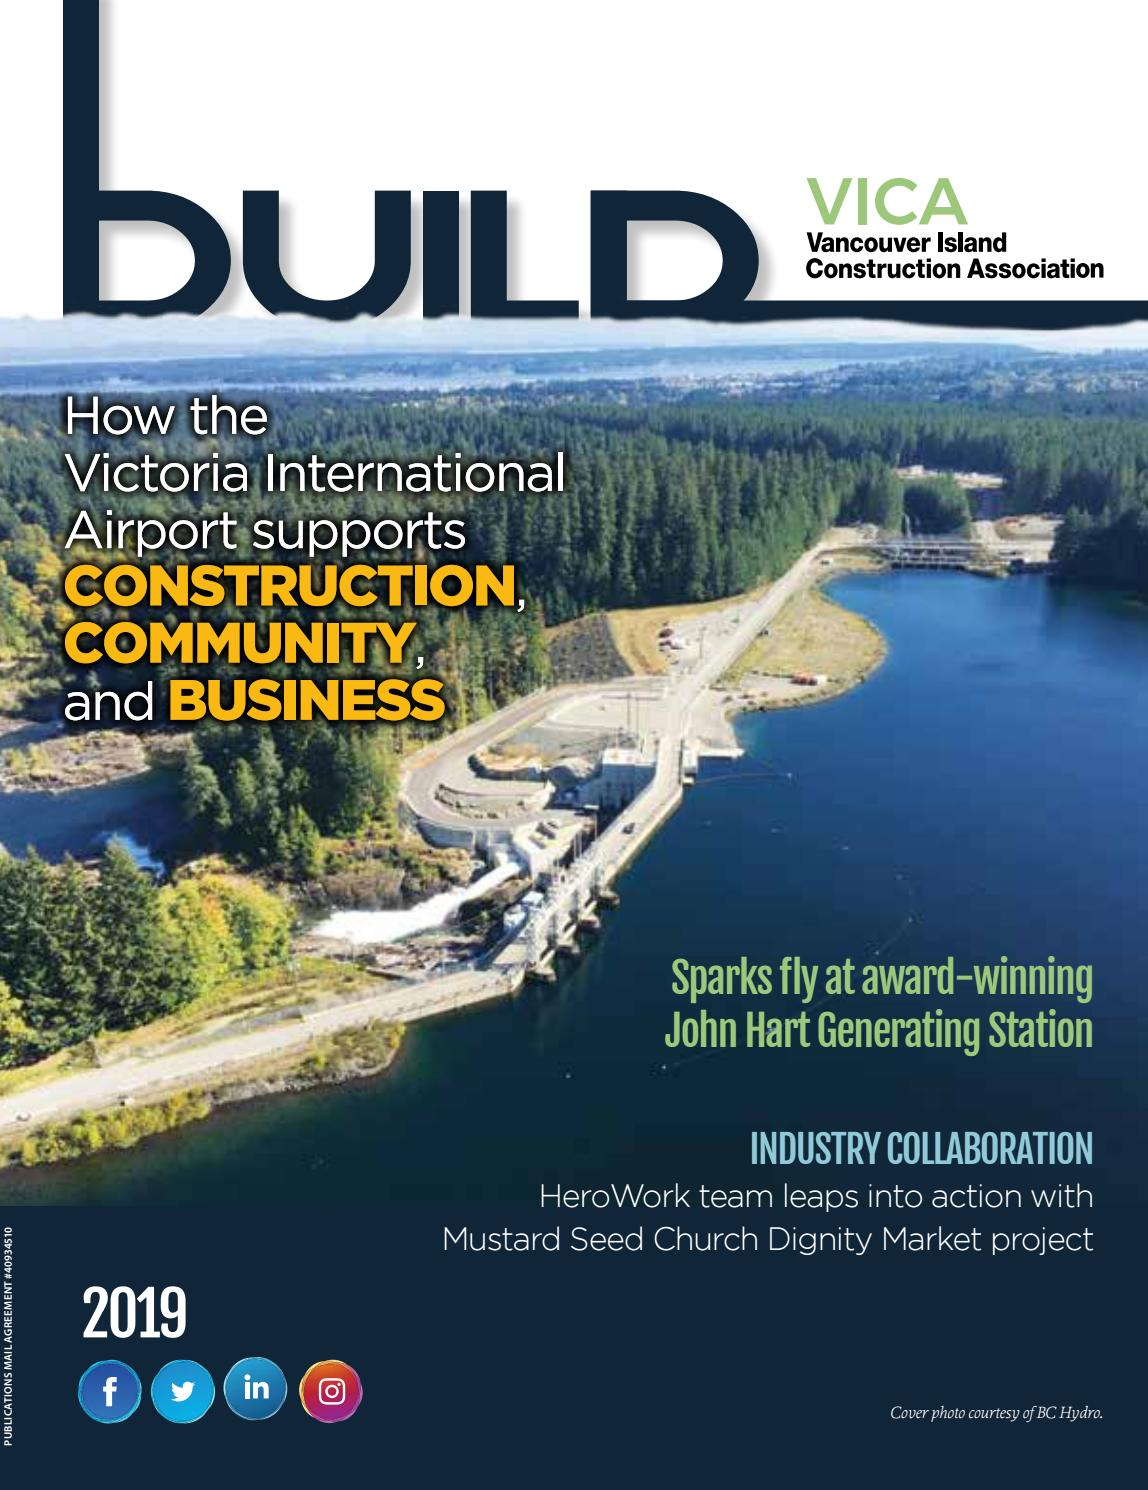 VICA BUILD Magazine 2019/20 by Vancouver Island Construction